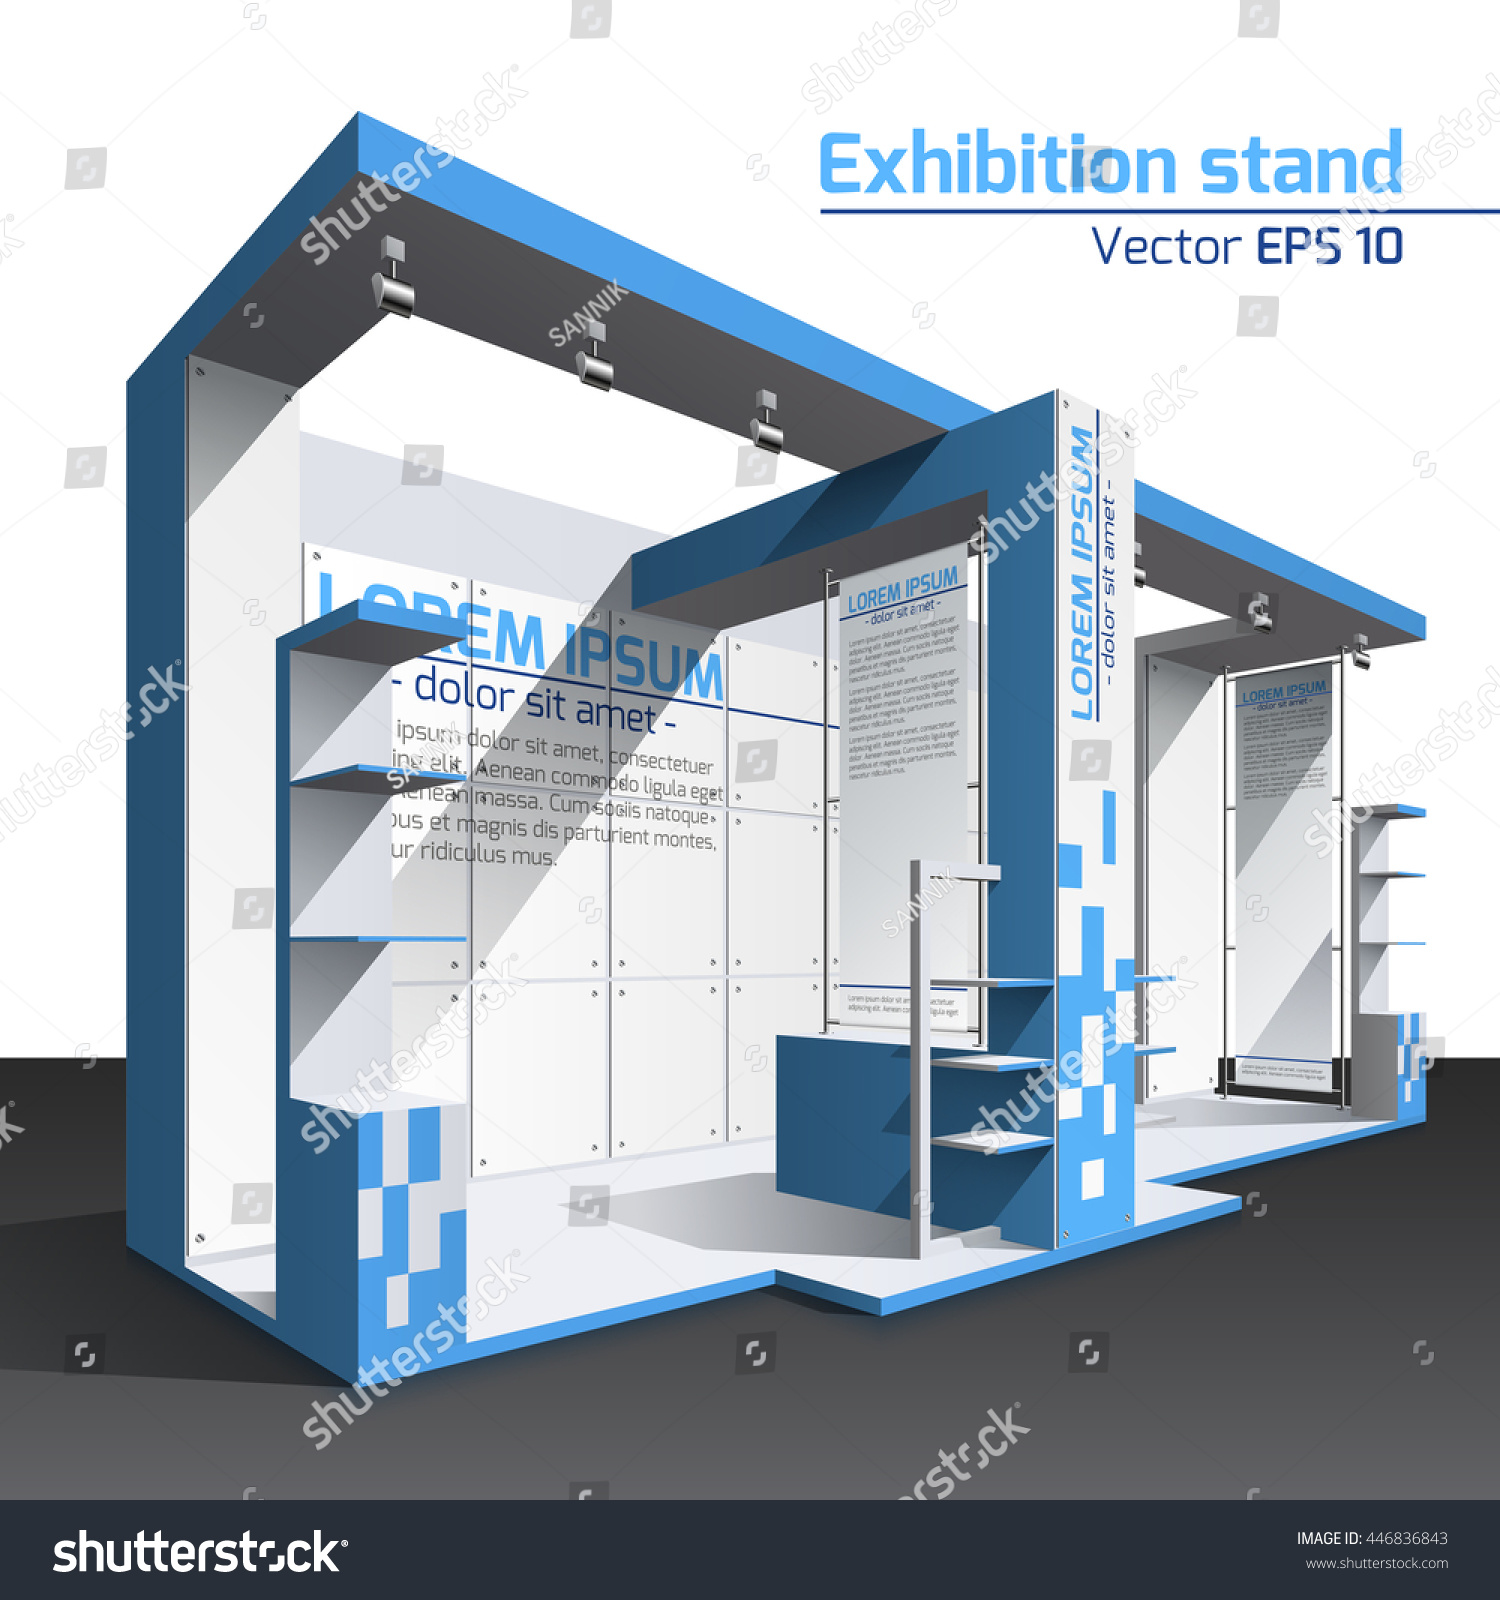 Exhibition Stand Design Illustrator : Realistic vector exhibition stand design blue stock